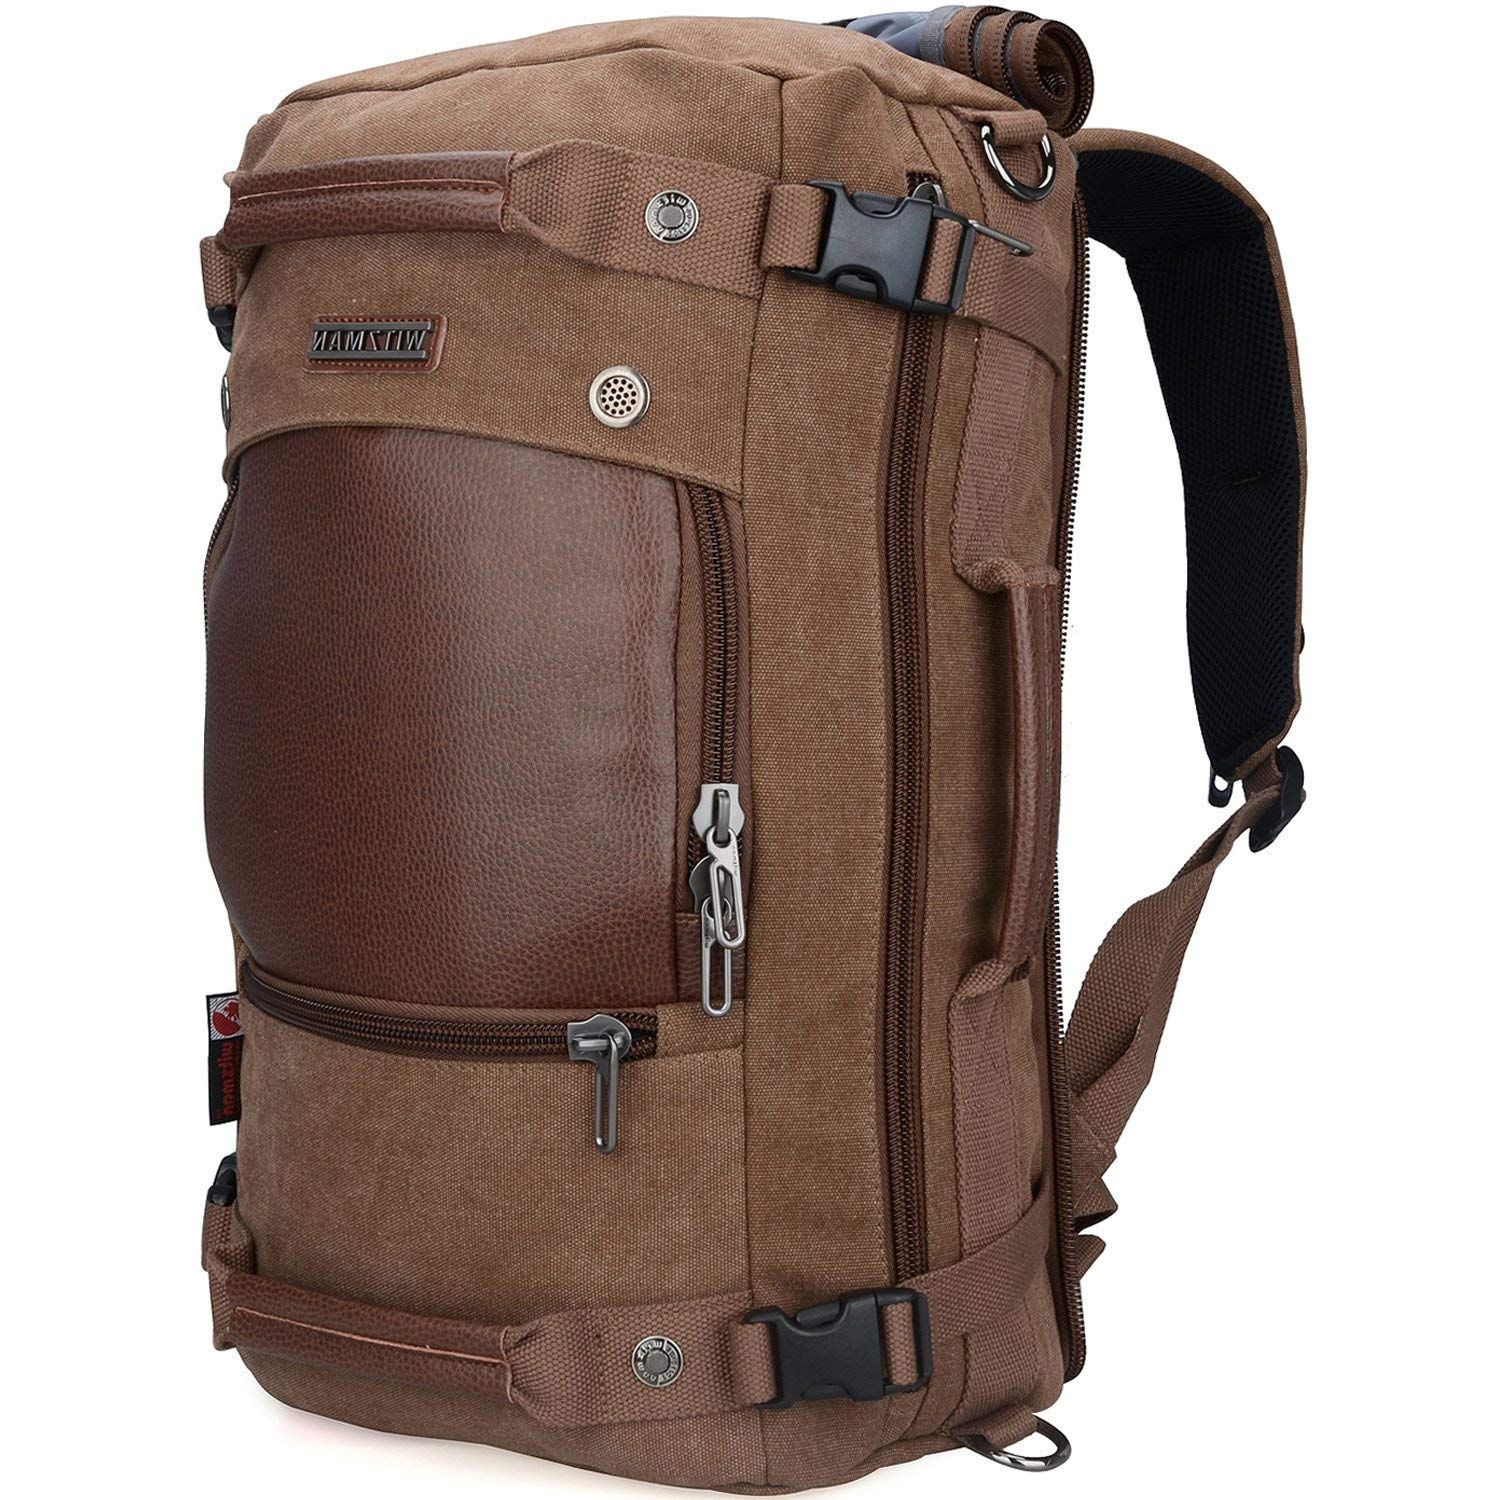 WITZMAN Men Travel Carry-On Backpack, A2021